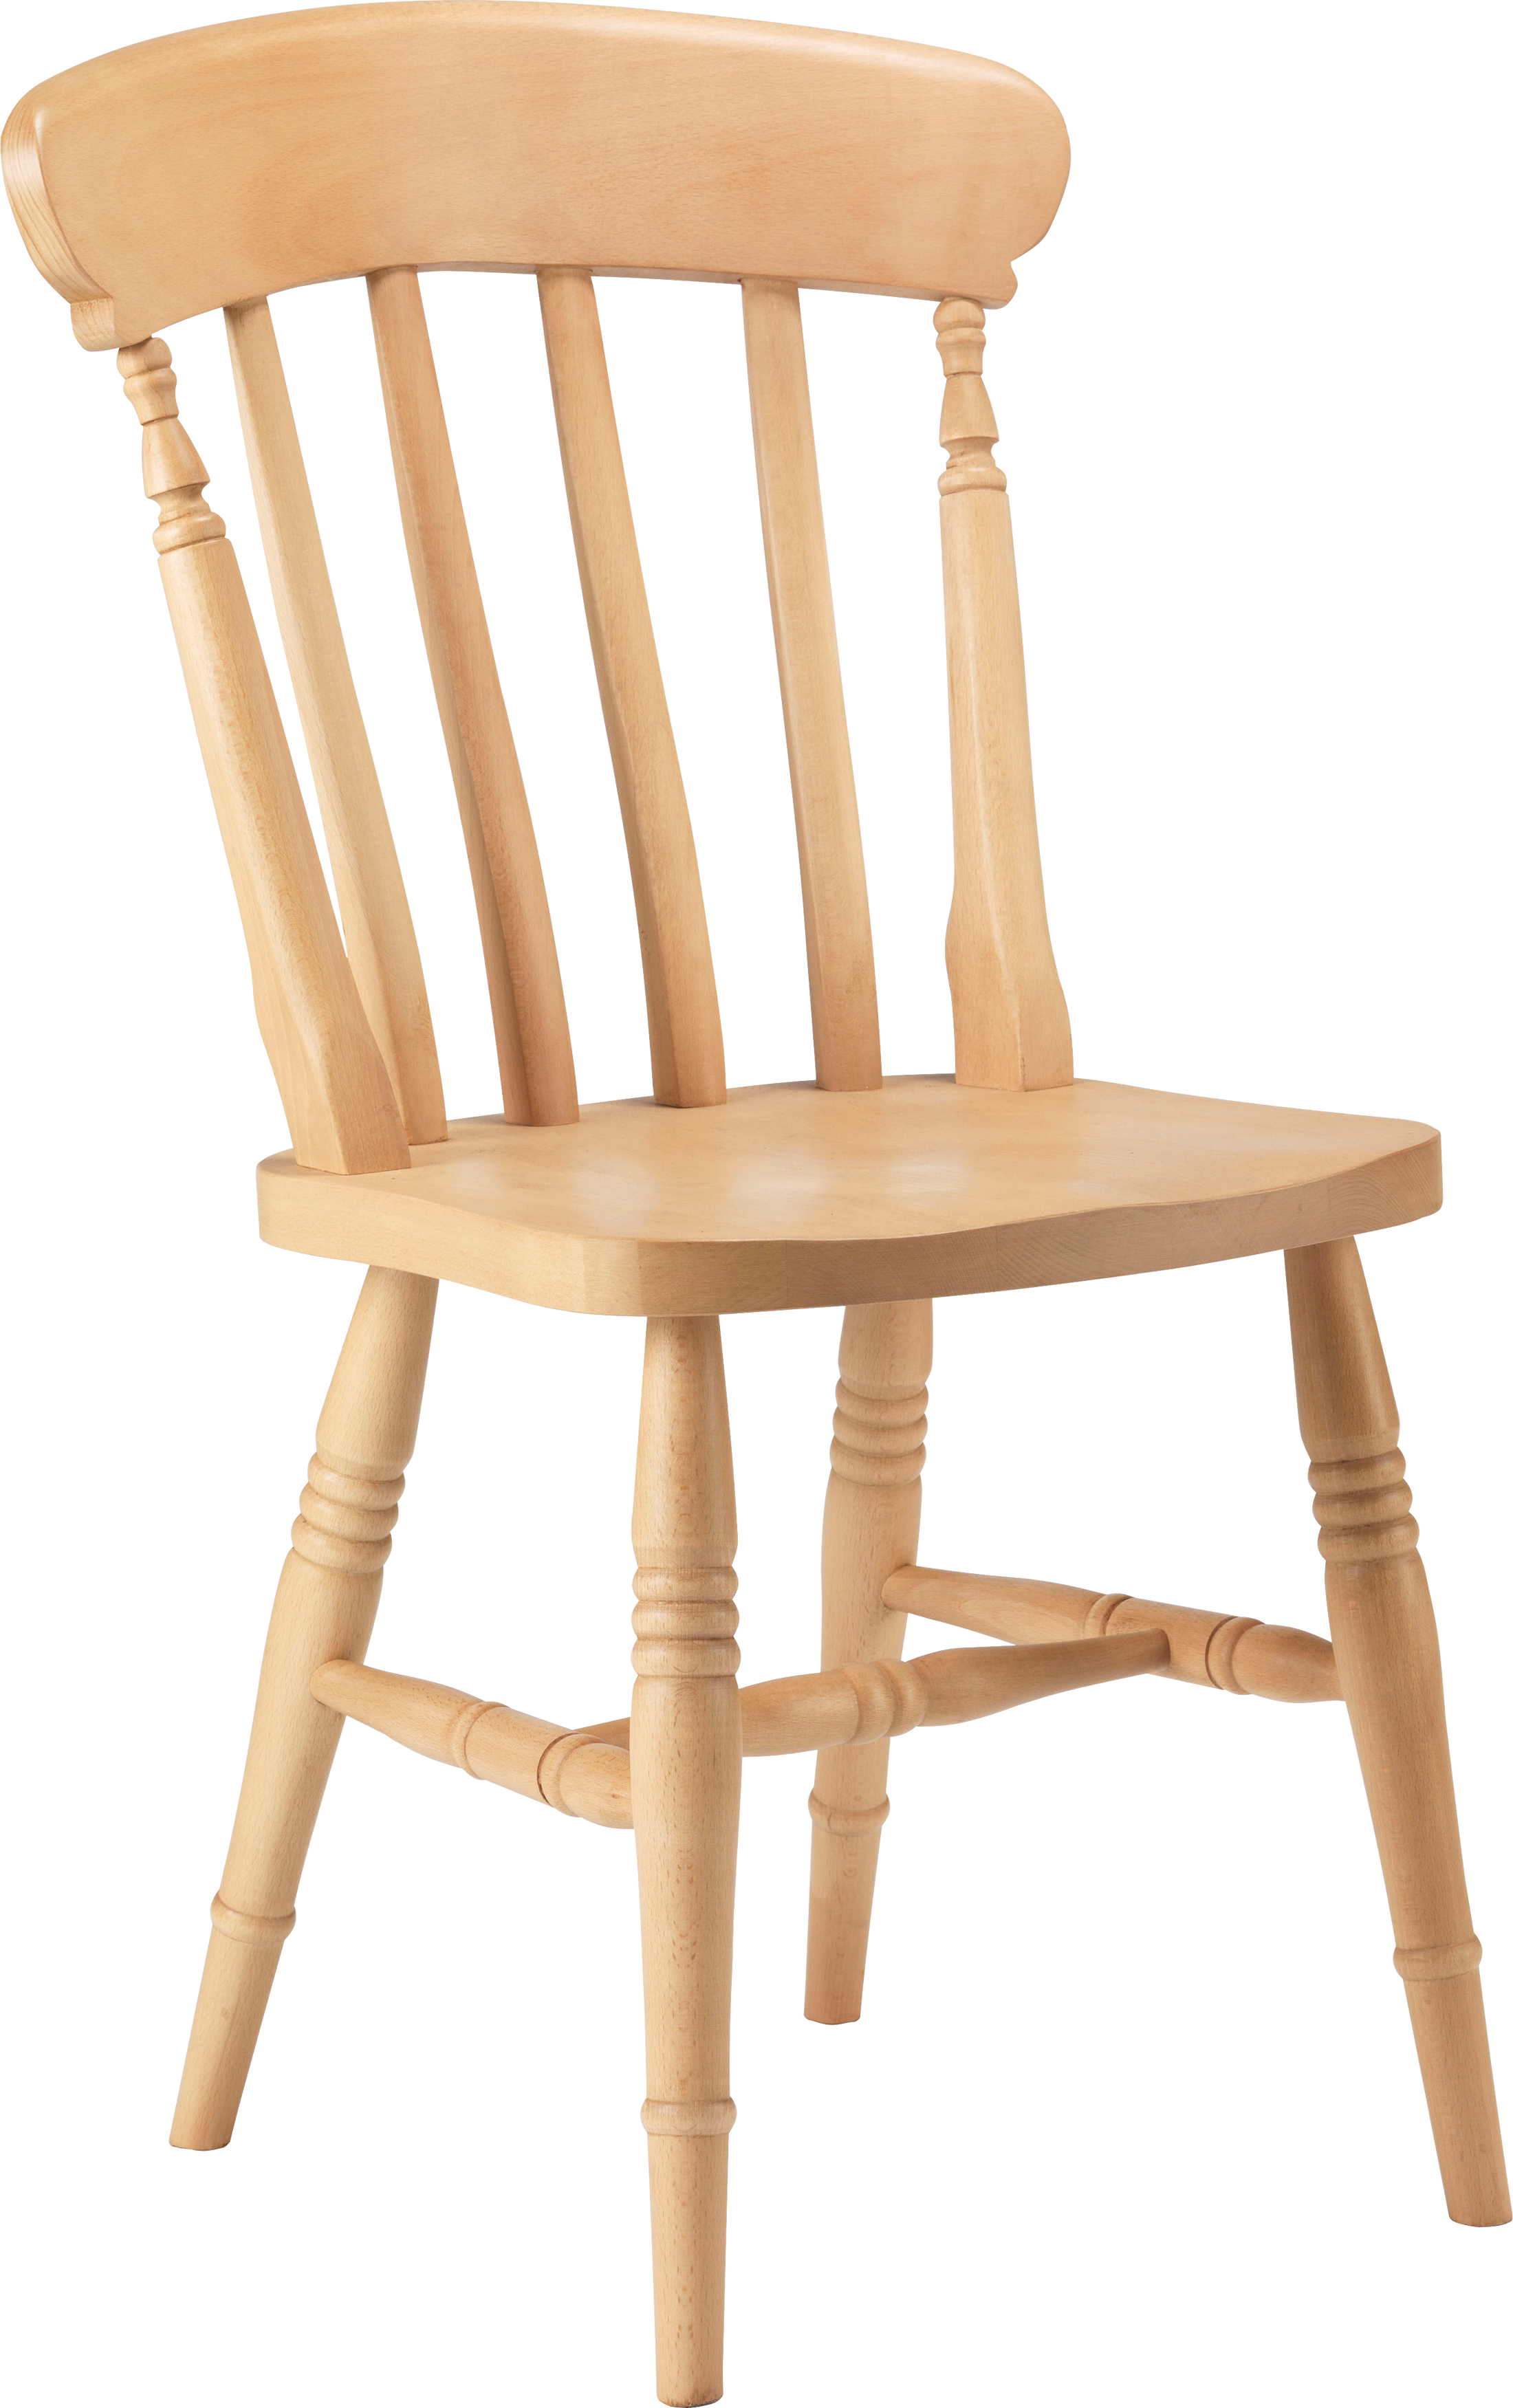 Chair Free Download Png PNG Image